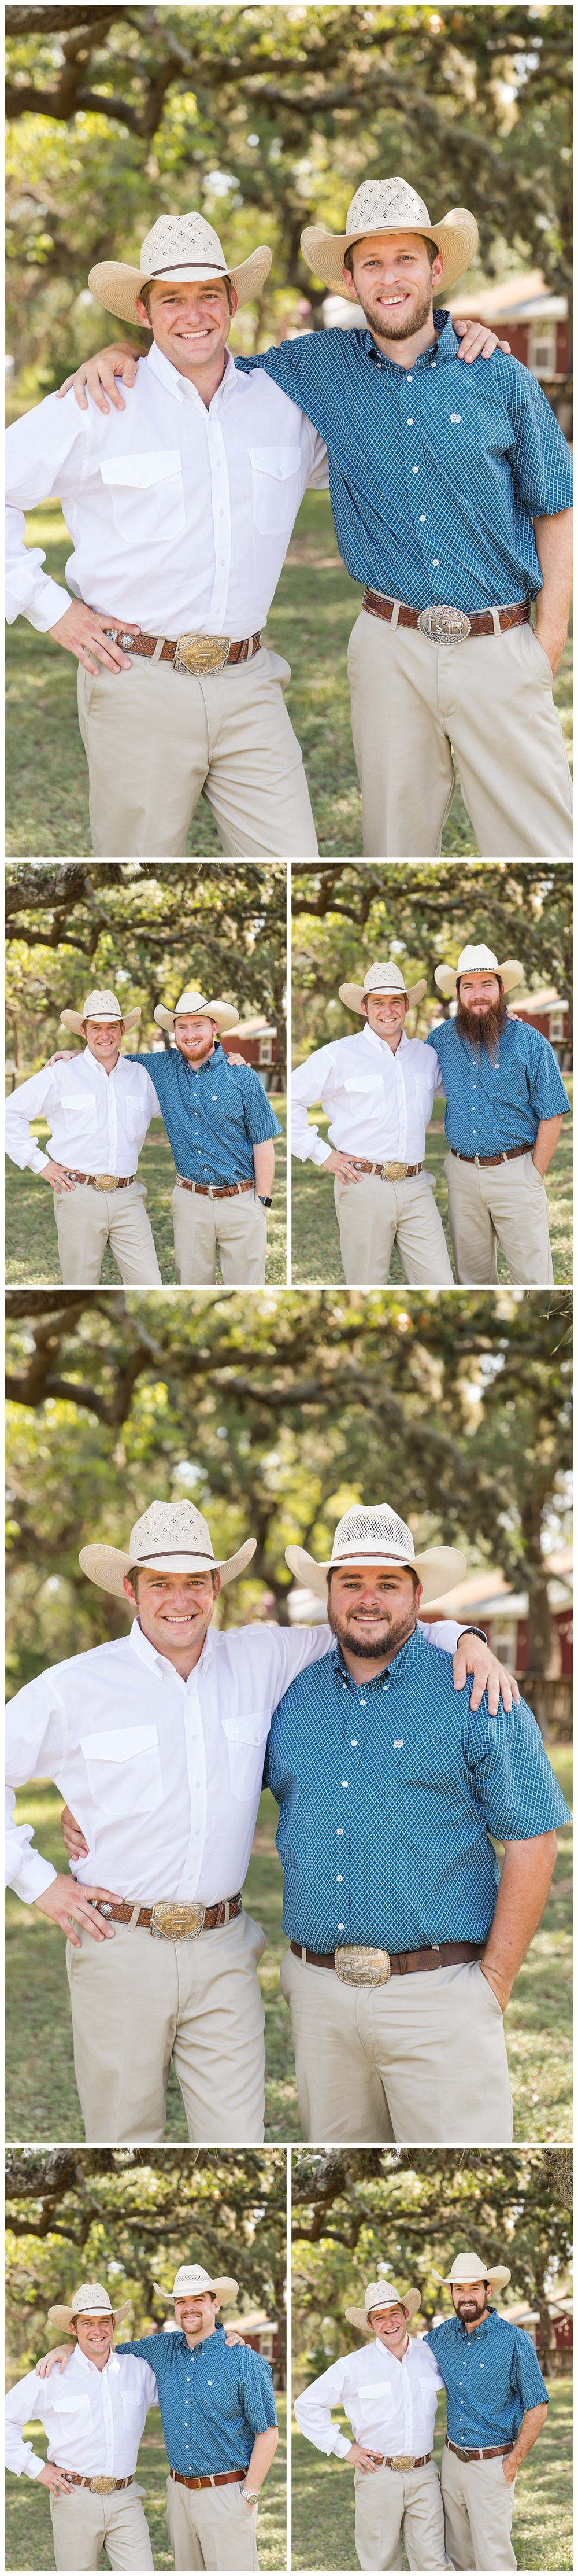 Texas-Wedding-Photographer-Braded-T-Ranch-Kendalia-Bride-Groom-Southwestern-Style-Carly-Barton-Photography-Vogt_0025.jpg